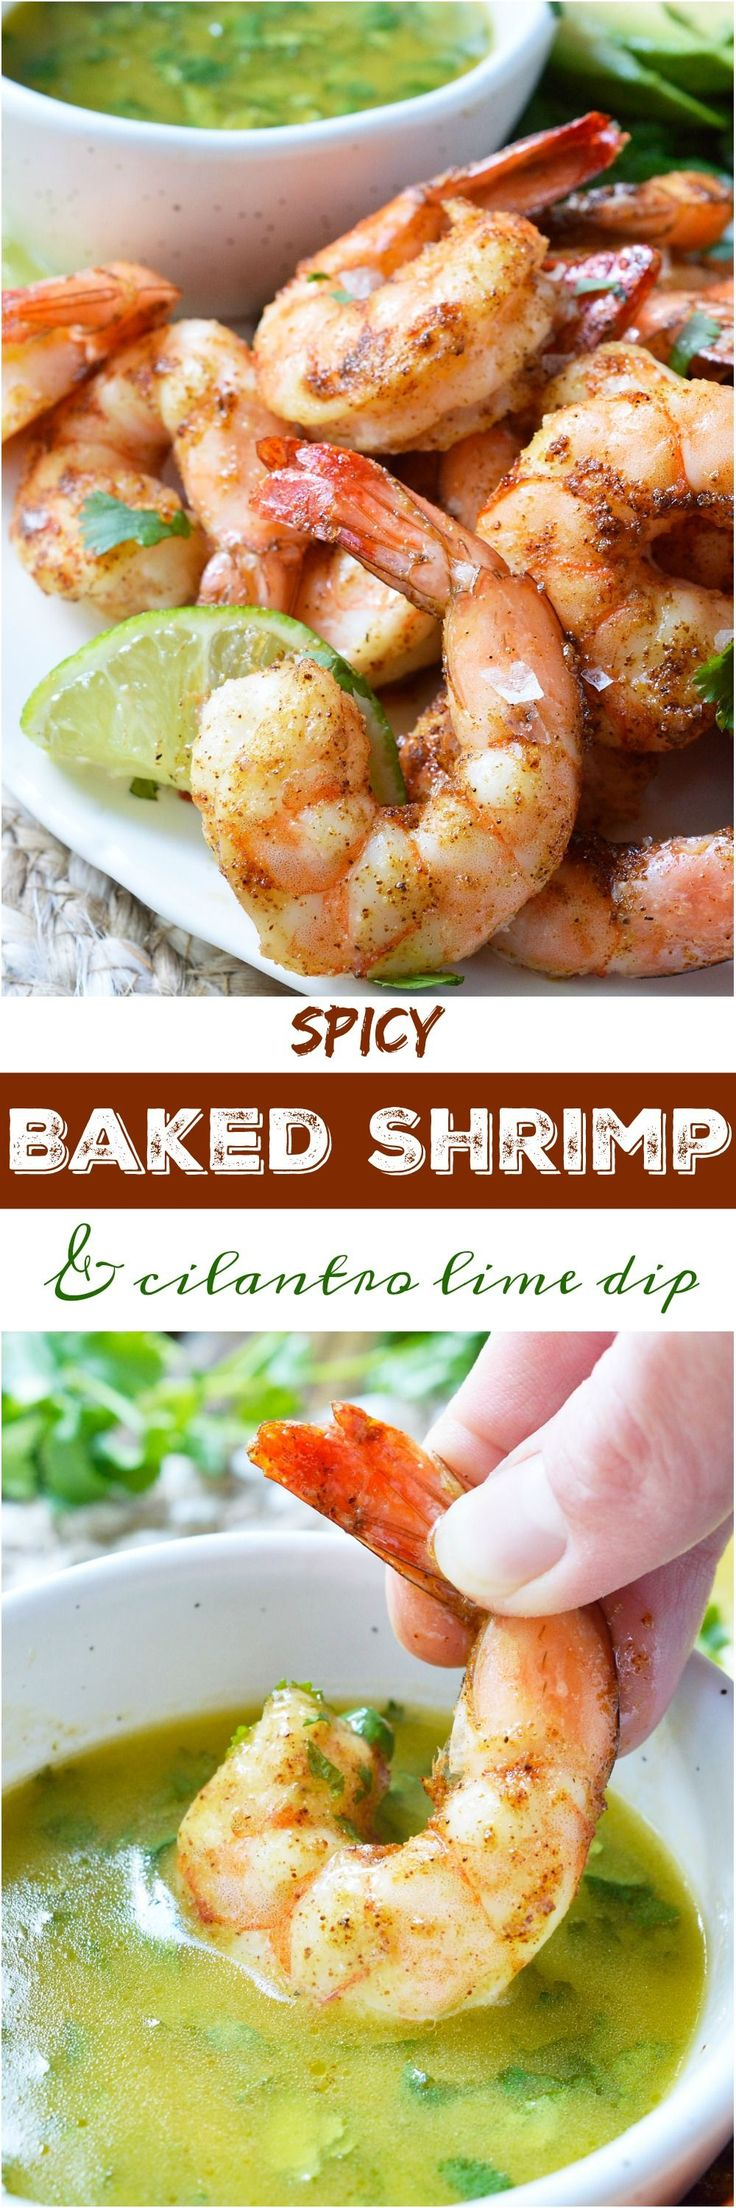 For punch in the face flavor, make these Cilantro Lime Spicy Baked Shrimp! This Whole30 compliant recipe starts with shrimp covered in spices, baked to perfection then served with a fresh cilantro lime dip. Perfect for a healthy lunch, dinner, appetizer or a snack!